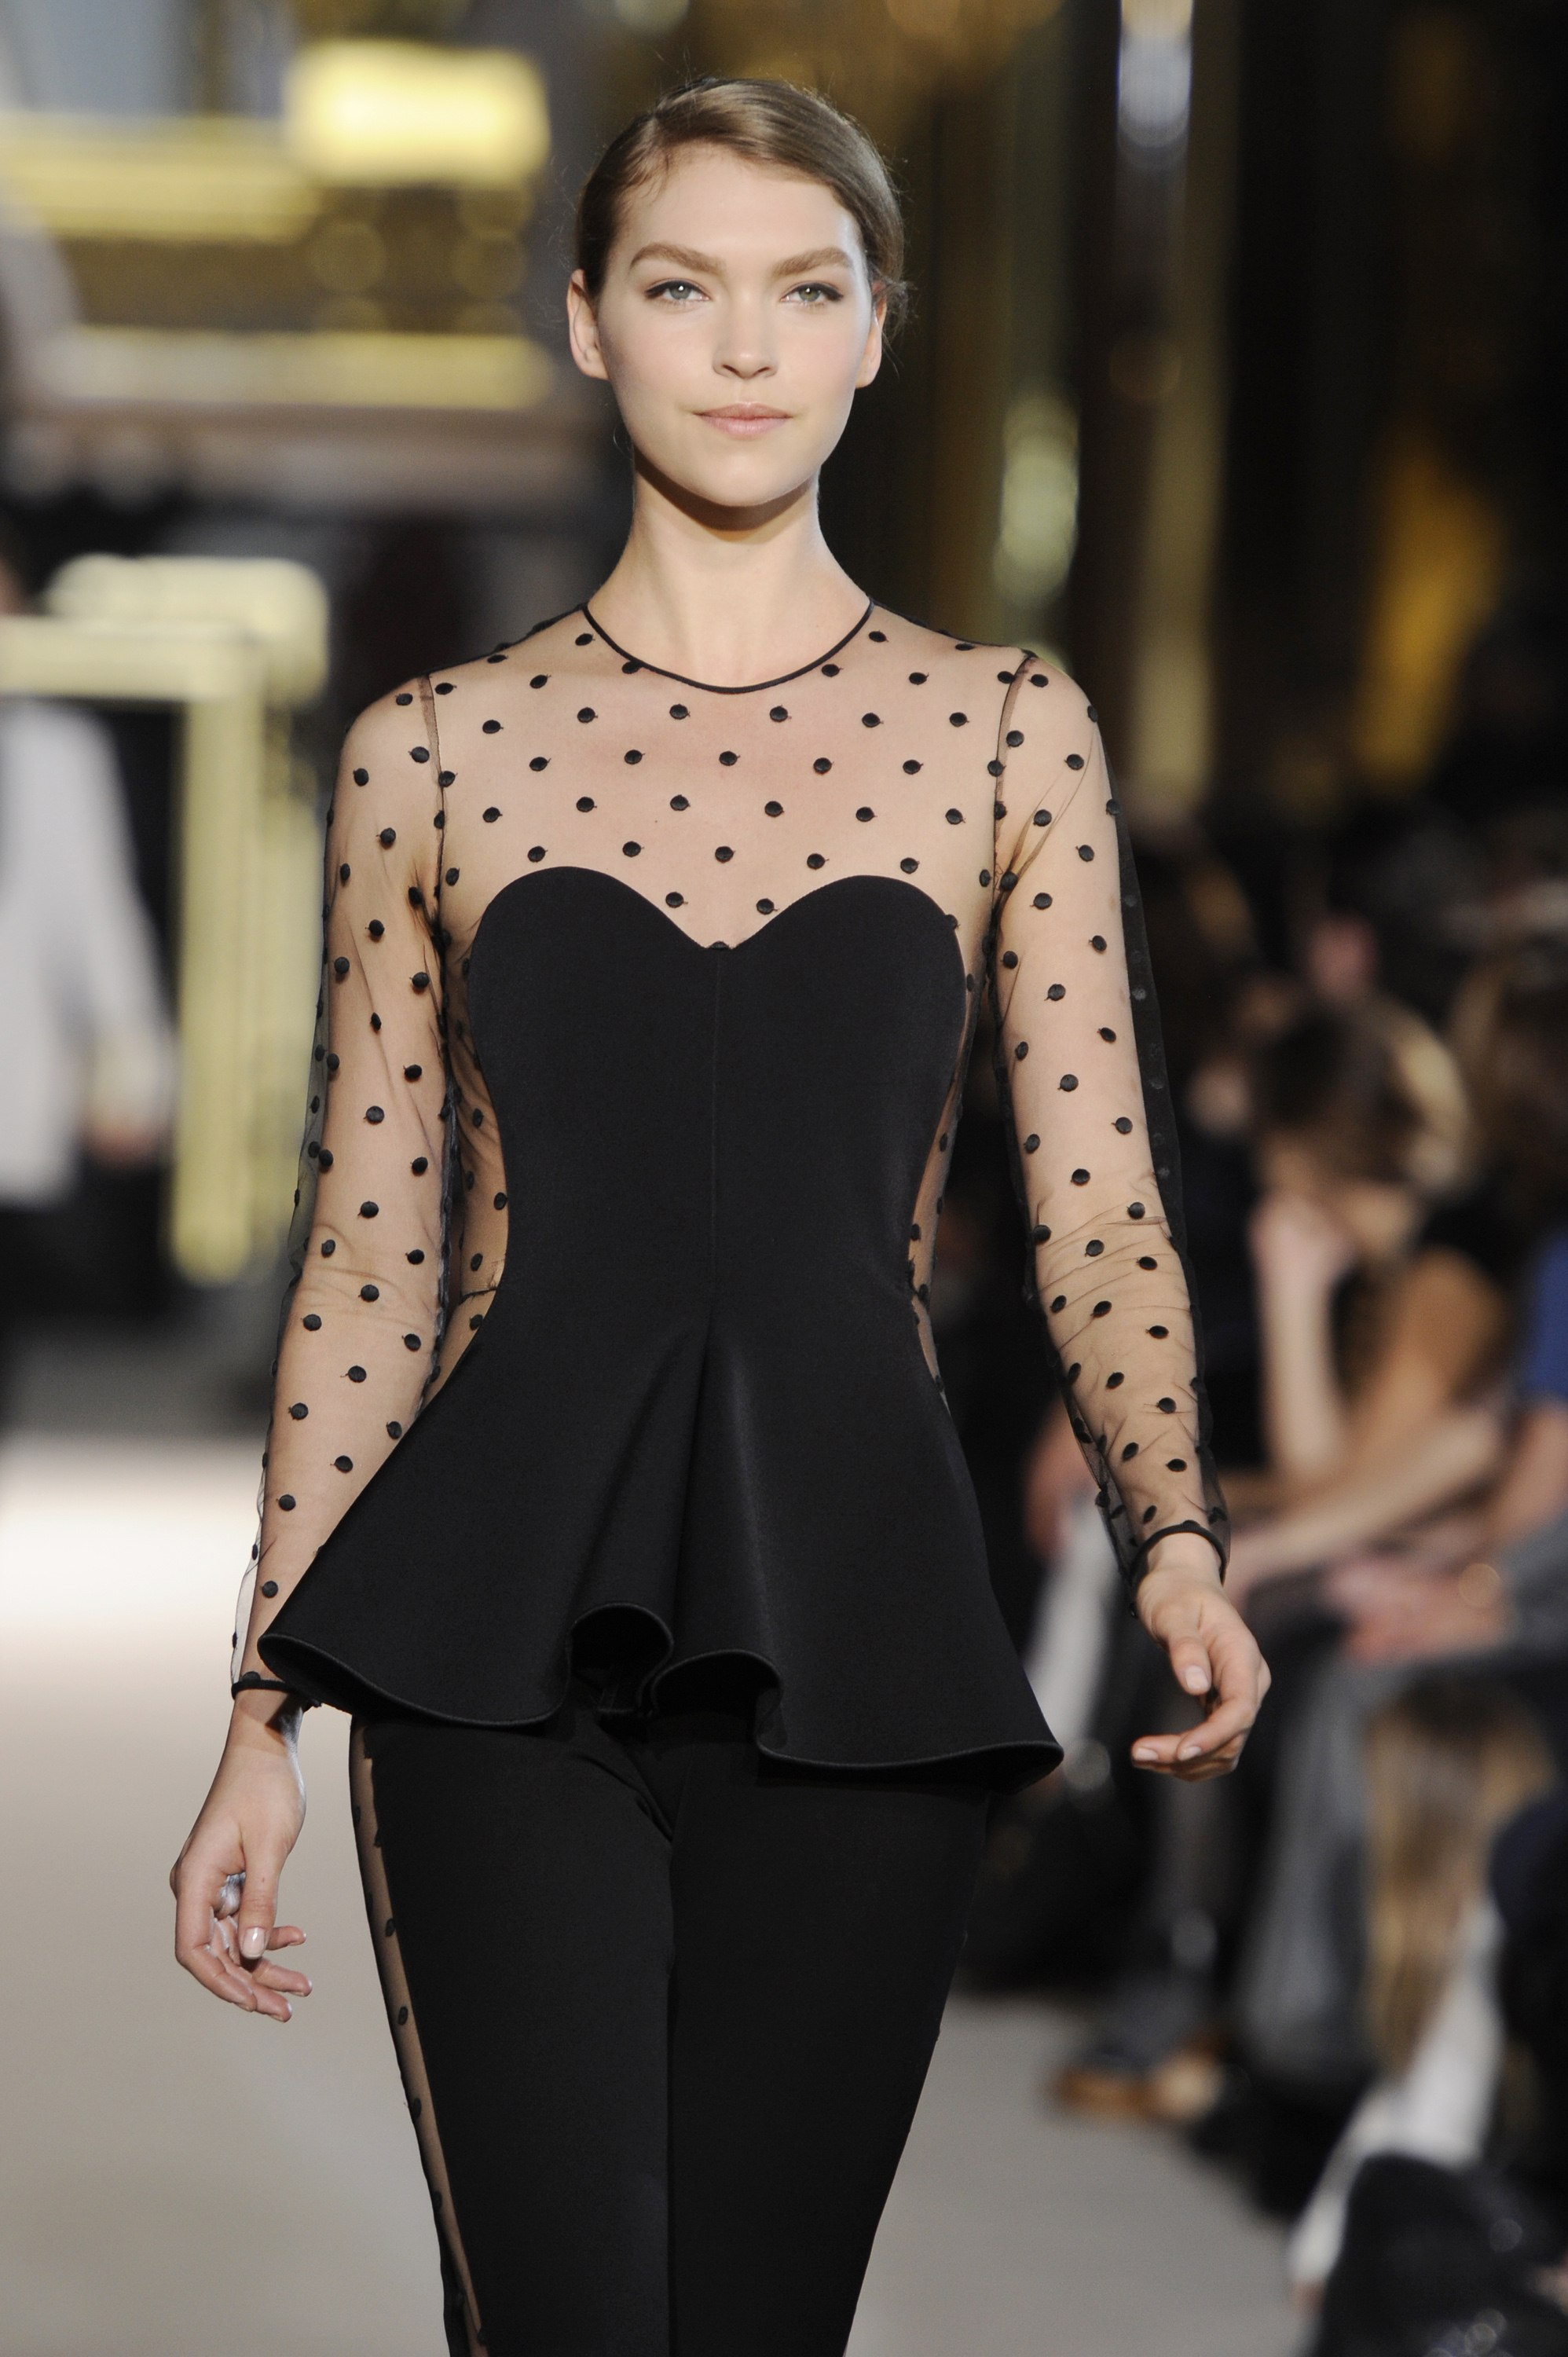 A model presents a creation by British designer Stella McCartney as part of her Fall-Winter 2011/2012 women's collection during Paris Fashion Week